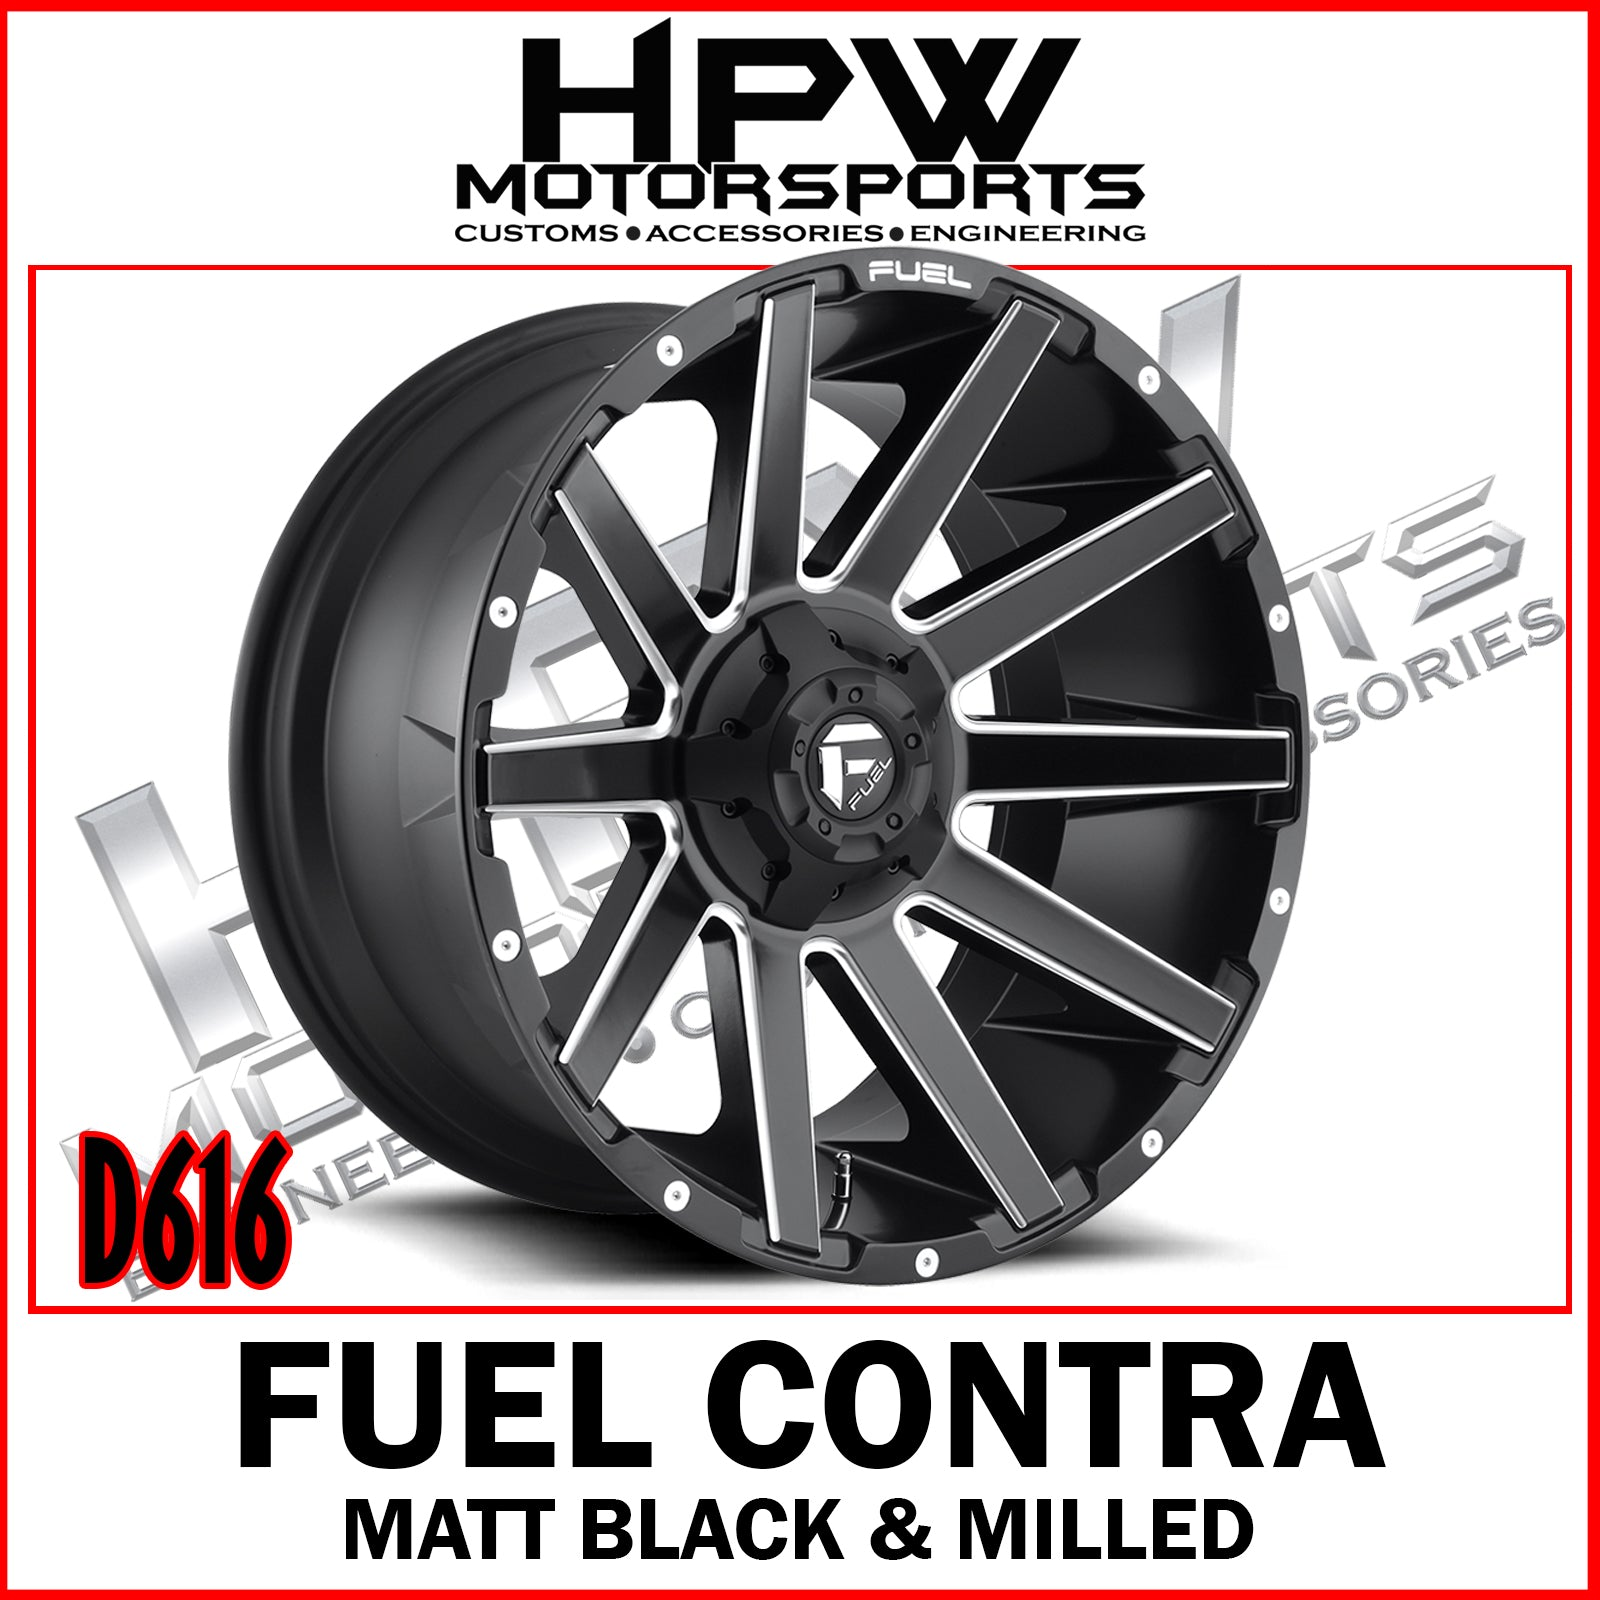 (20x10 -19) D616 FUEL CONTRA - MATT BLACK & MILLED - Set of 4